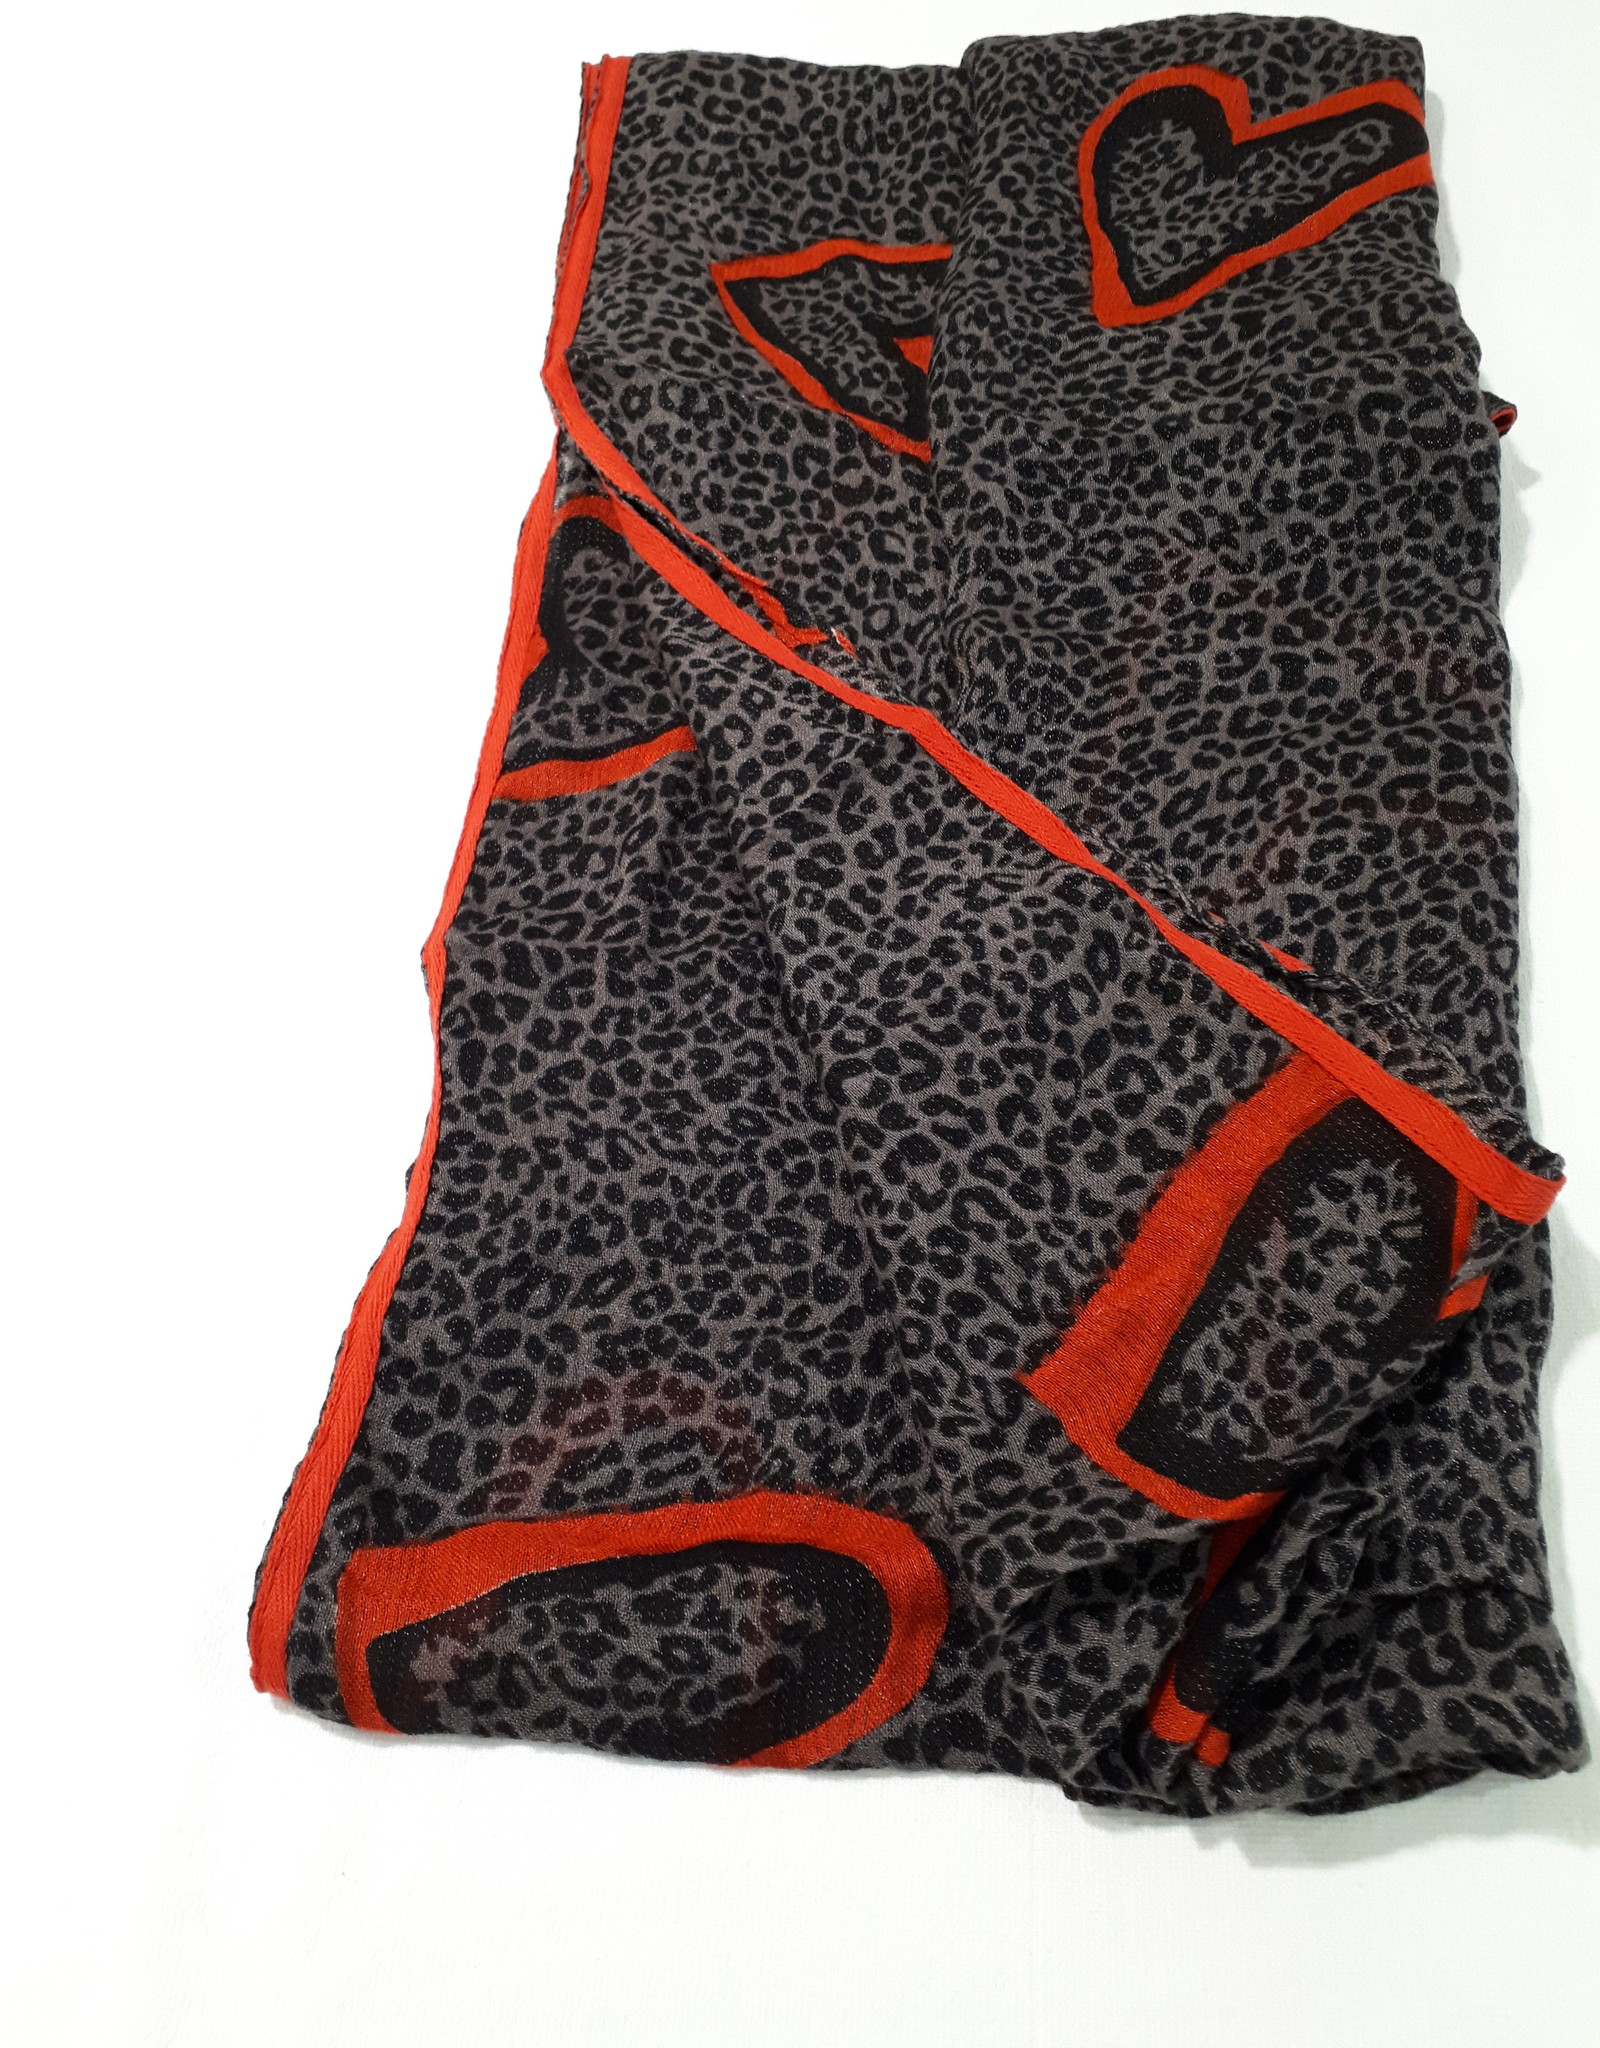 About accessories  Ladies Scarf leopard print with Hearts